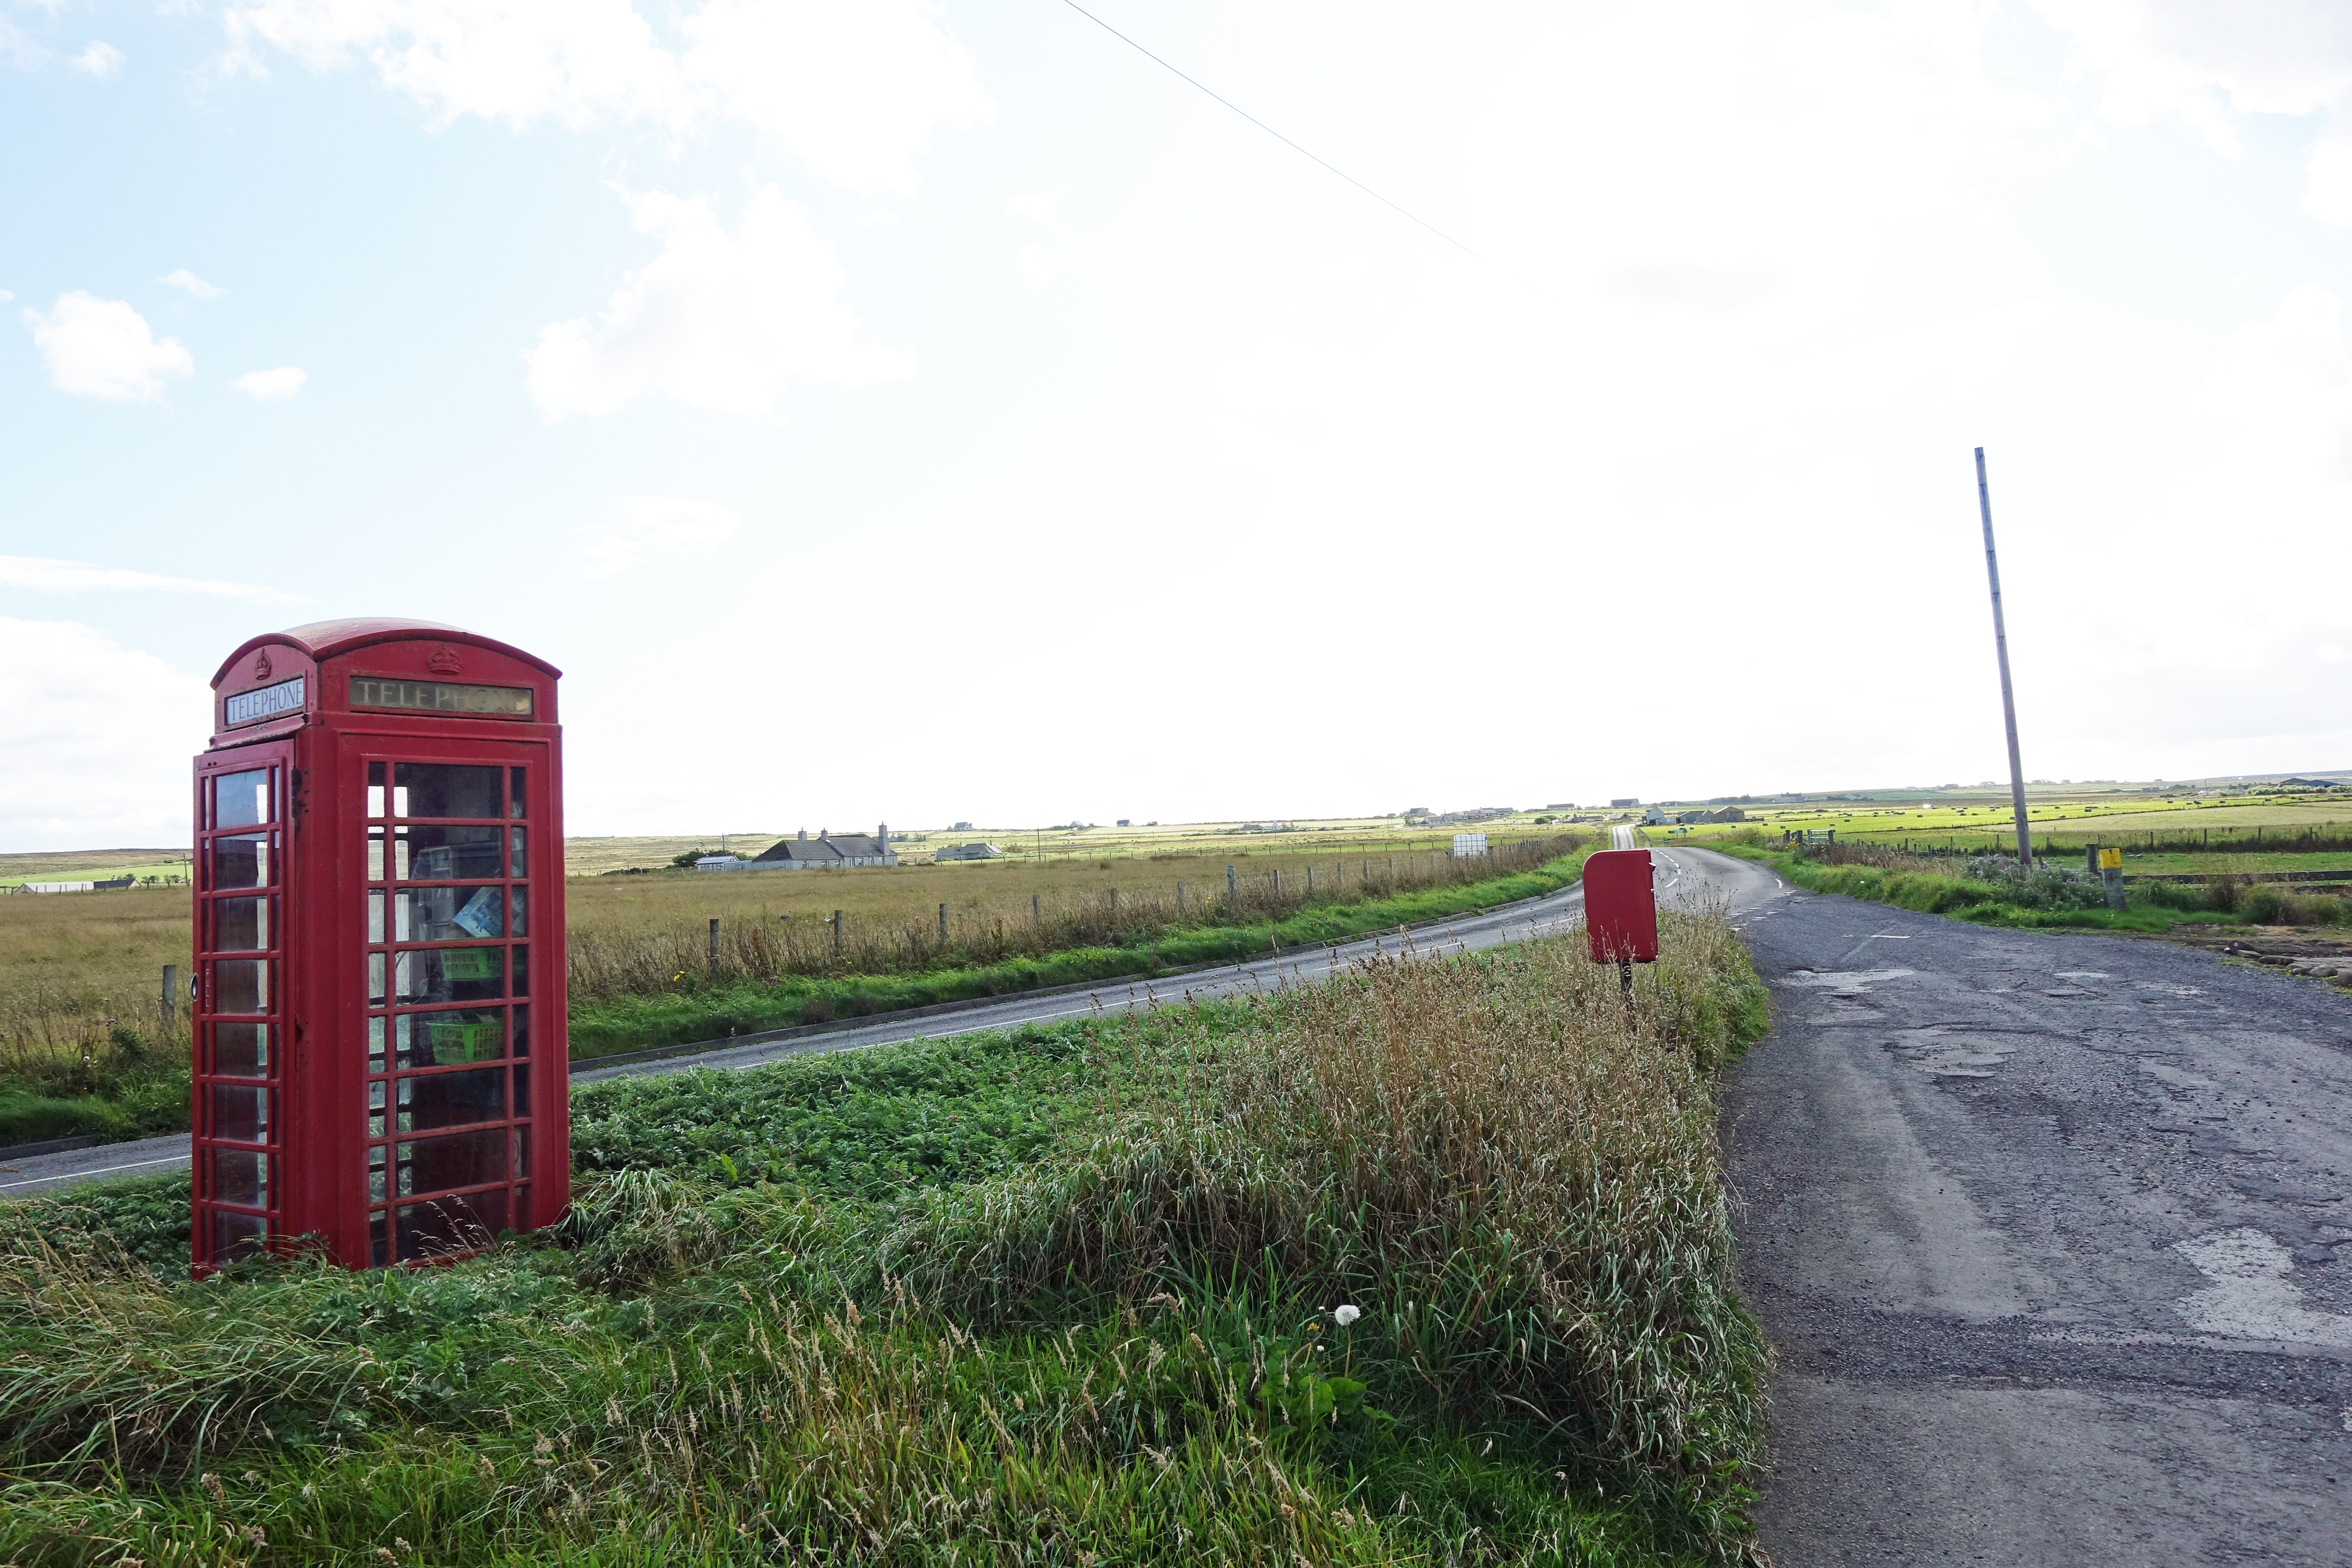 K6 kiosk on the road approaching John O'Groats. In the roll-out years of mobile phones in the UK, coverage could sometimes be patchy in lonely areas. Landlines were crucial for many years, less so  today